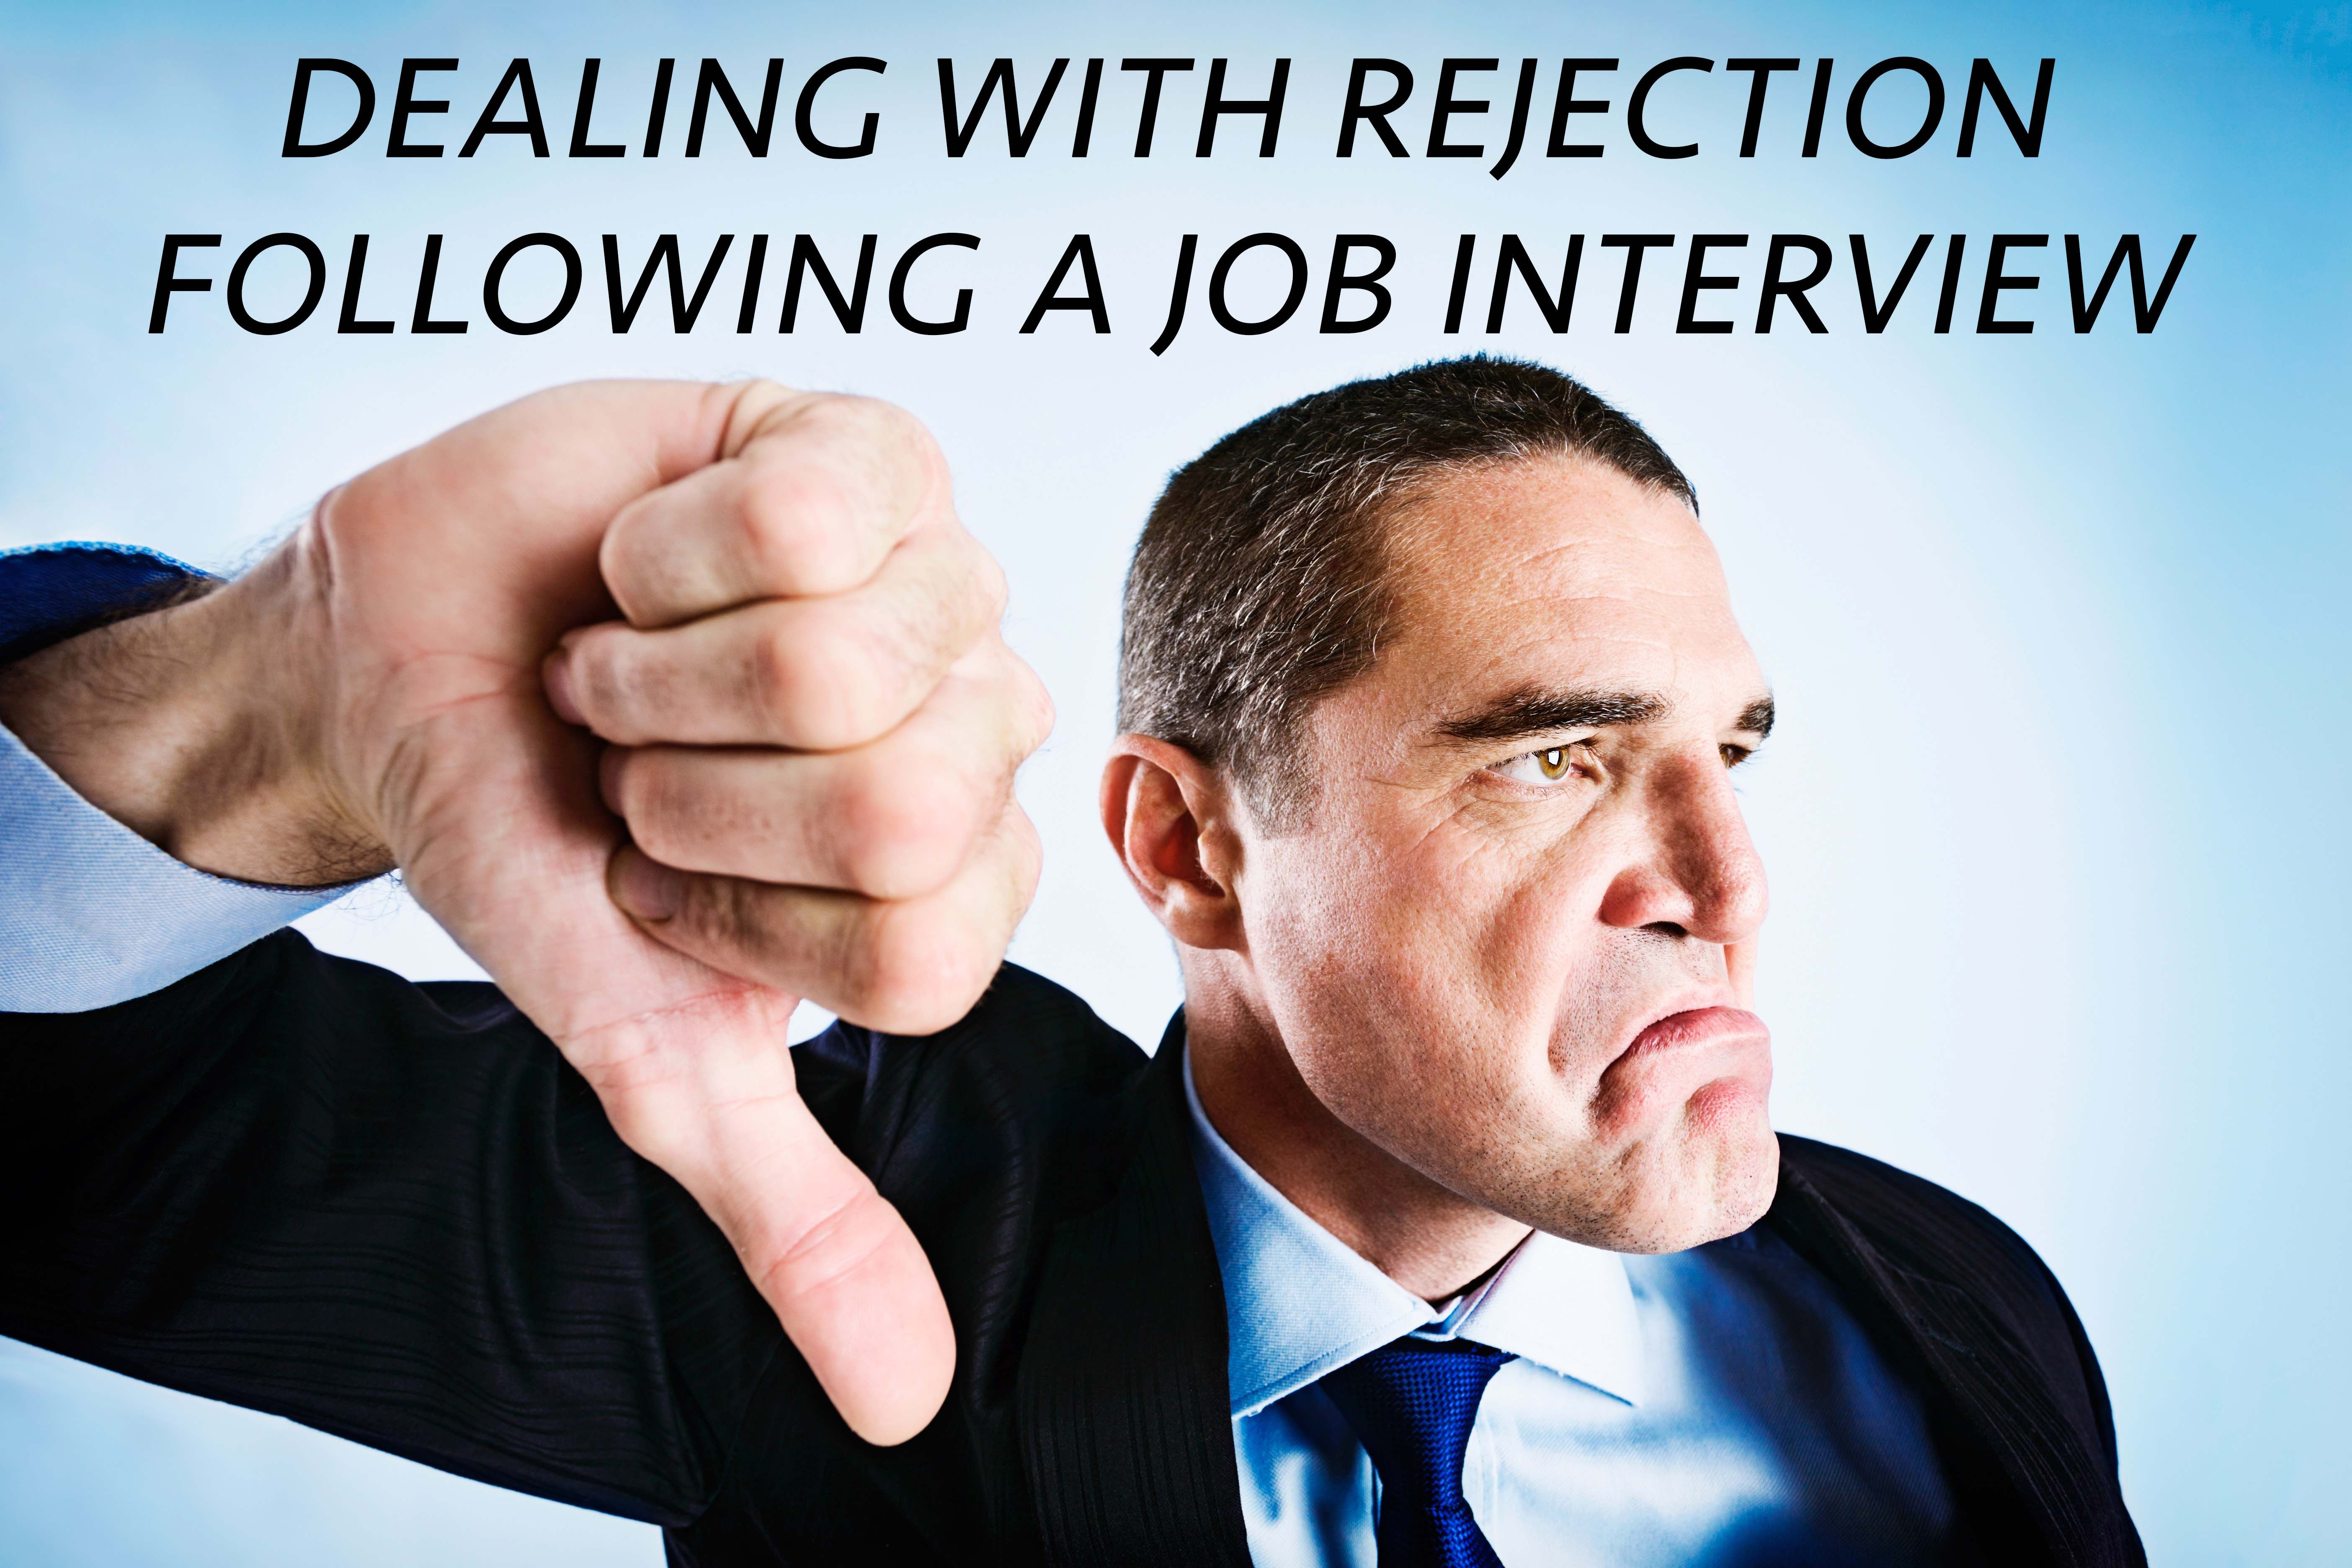 Dealing with rejection following a job interview the job